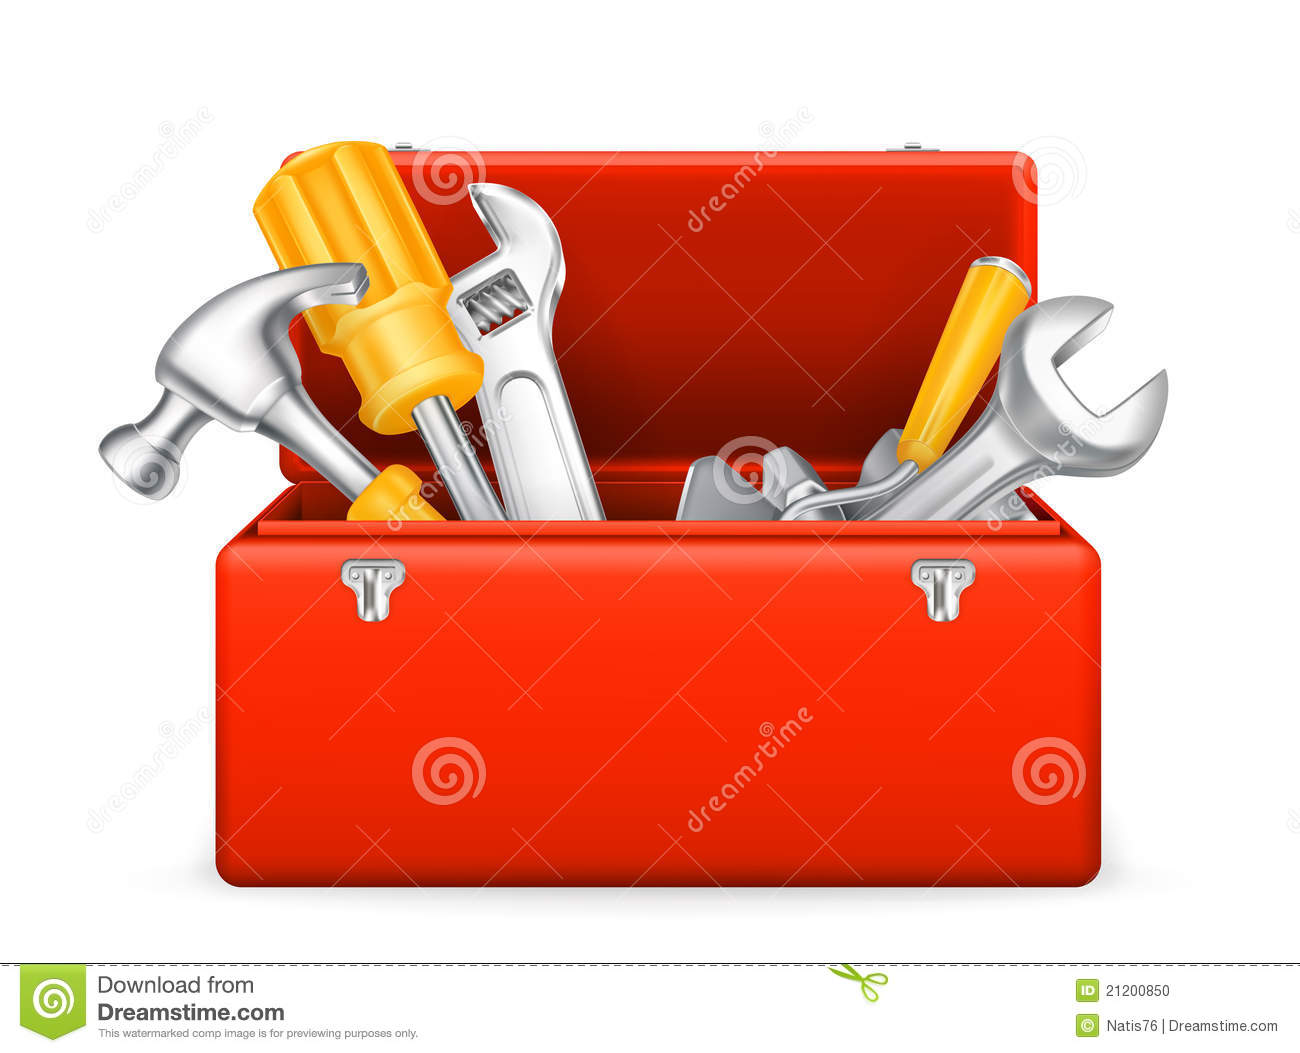 Toolbox icon stock vector. Illustration of equipment   20